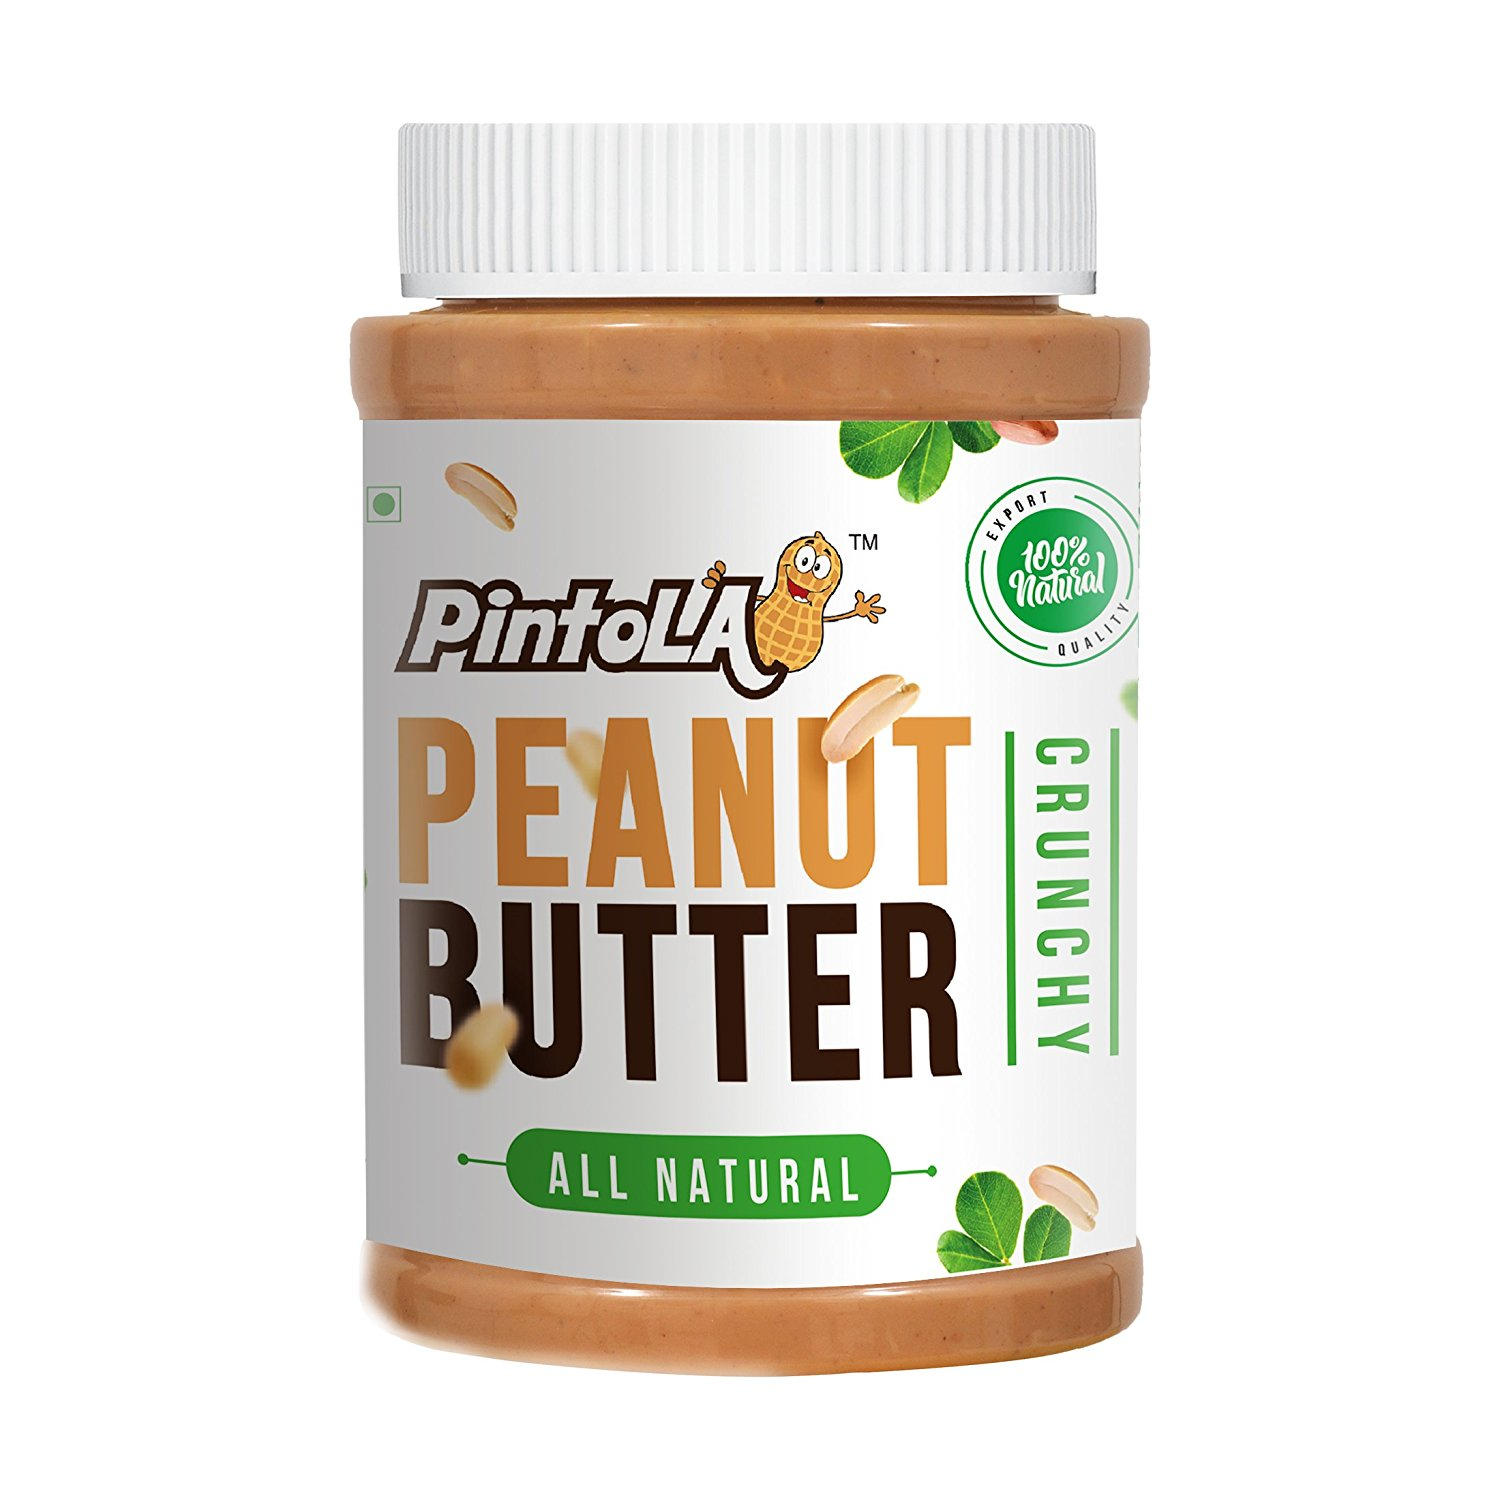 Pintola All Natural Crunchy Peanut Butter Image